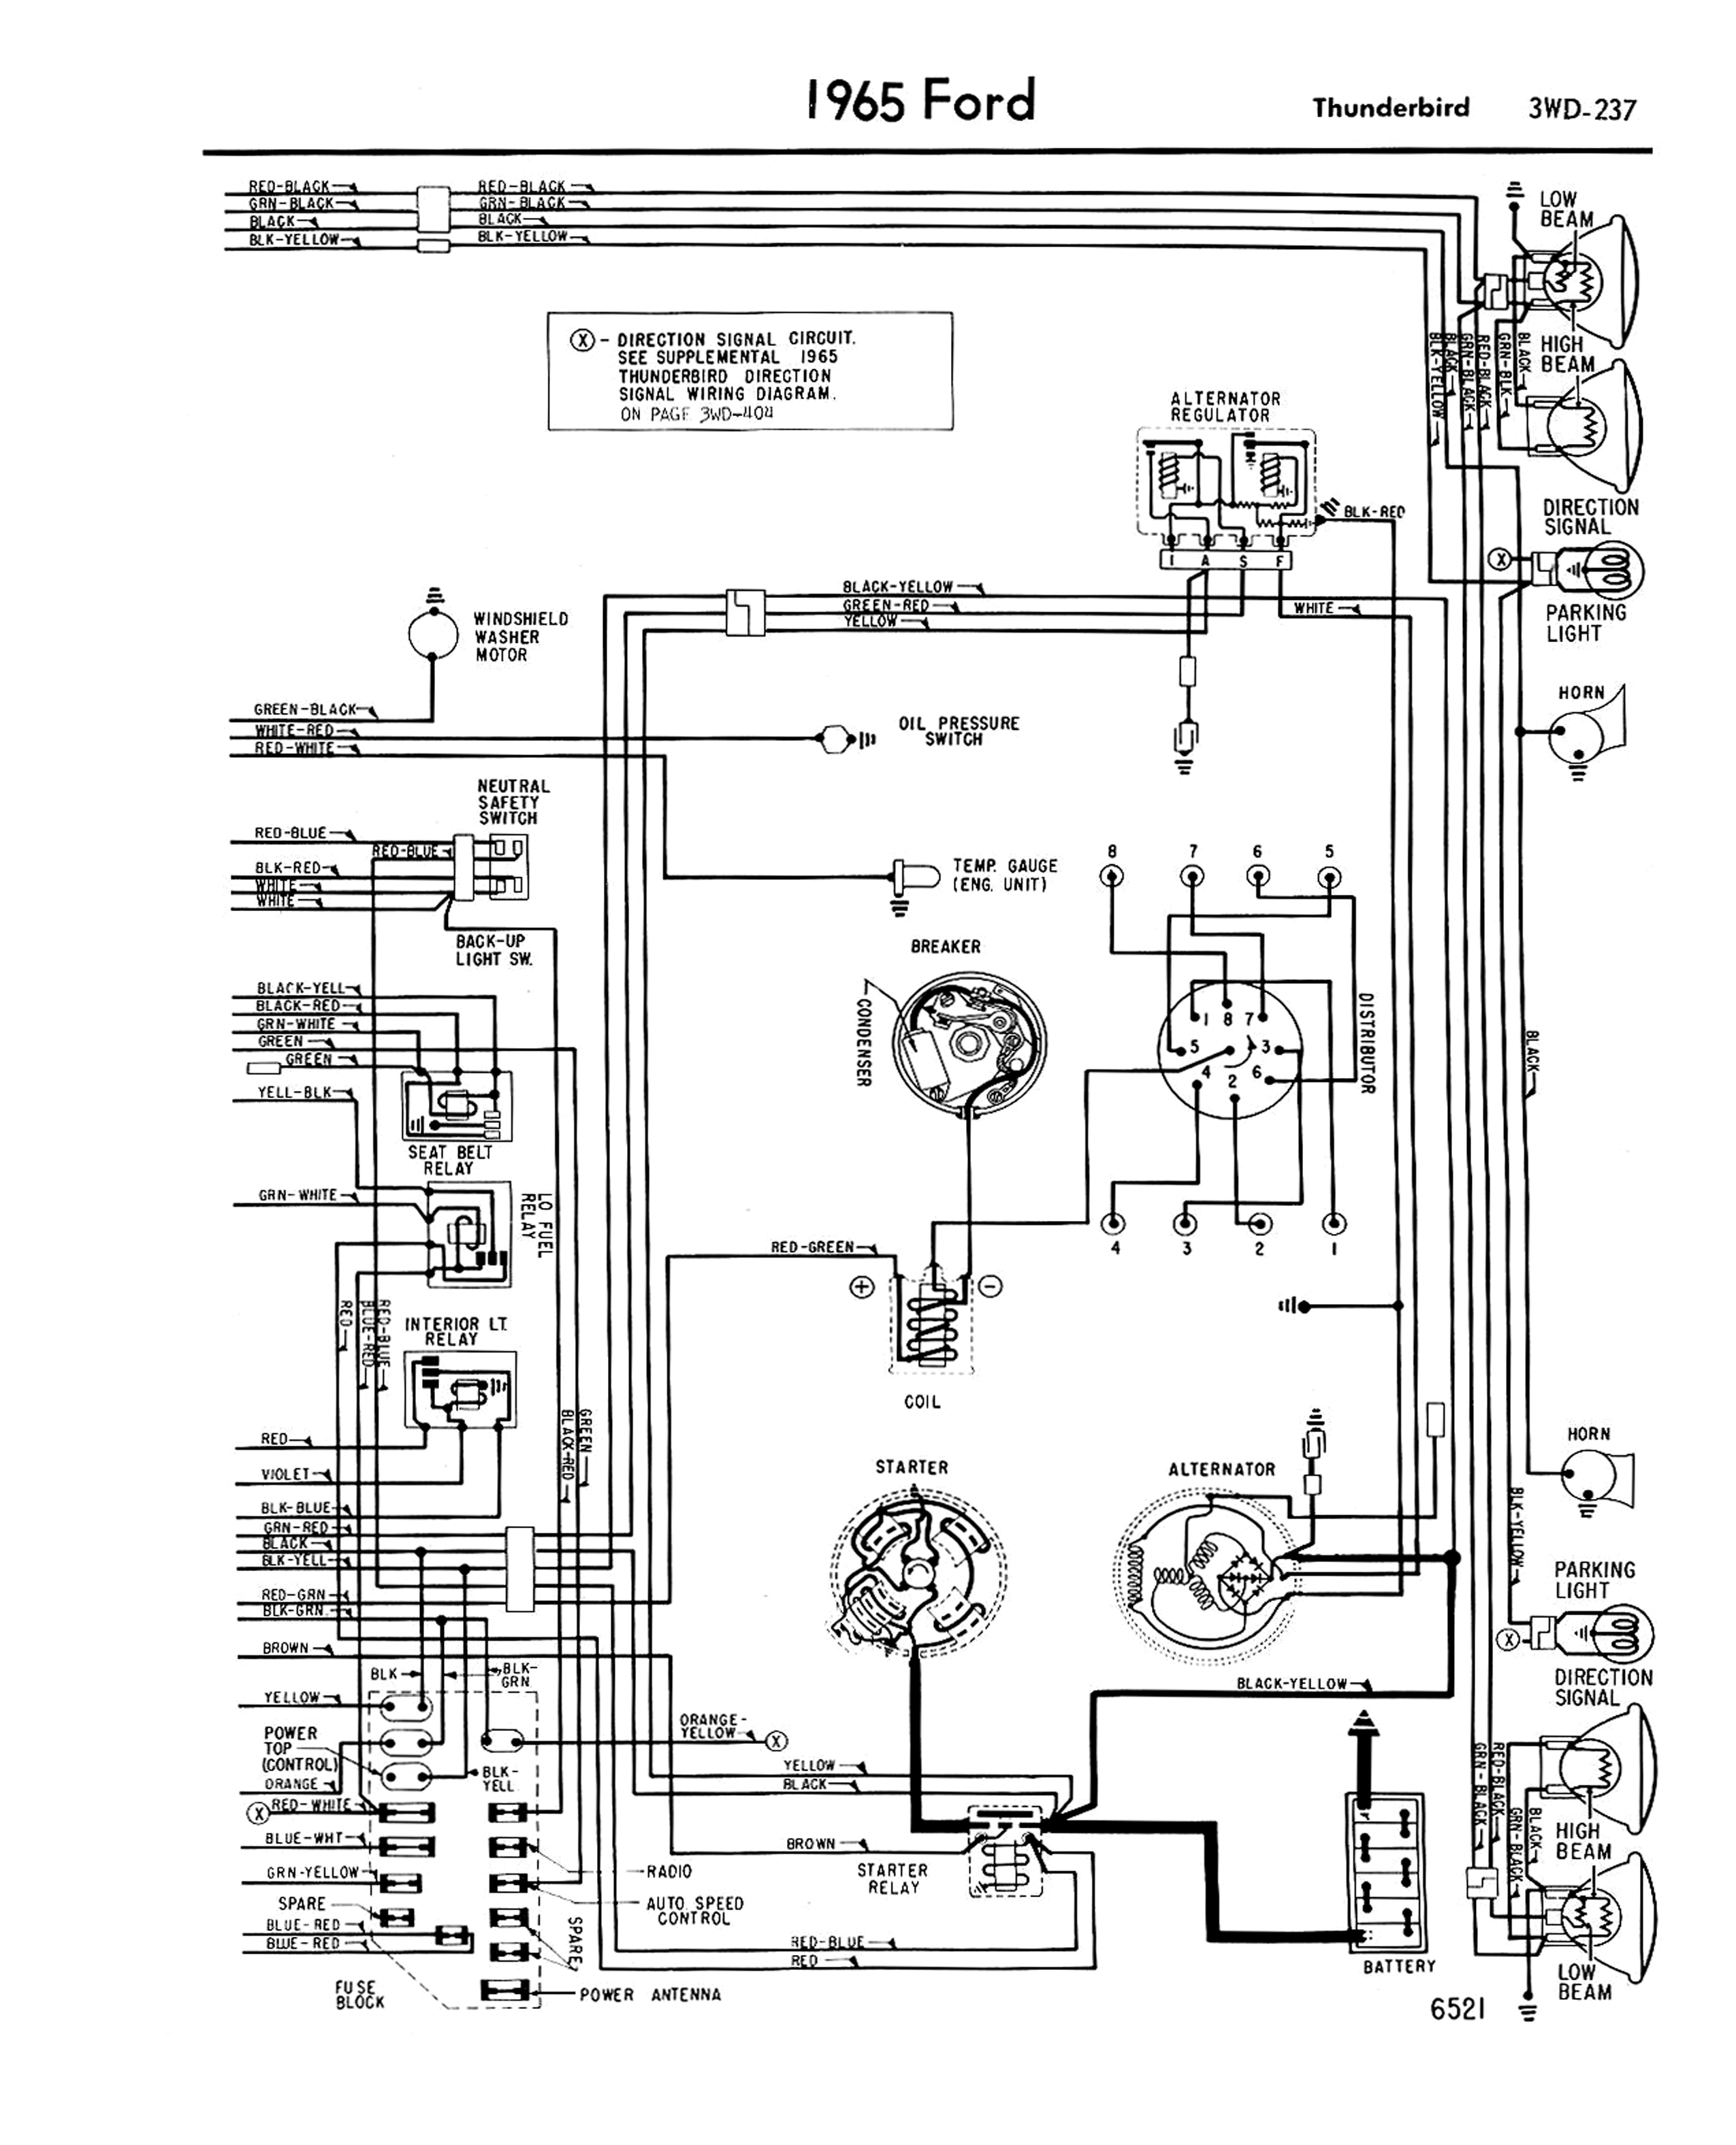 1965 Ford Mustang Fuse Box Diagram Wiring Library 1968 Dash Cluster 1958 68 Electrical Schematics Rh Squarebirds Org T Bird Convertible Data Plate